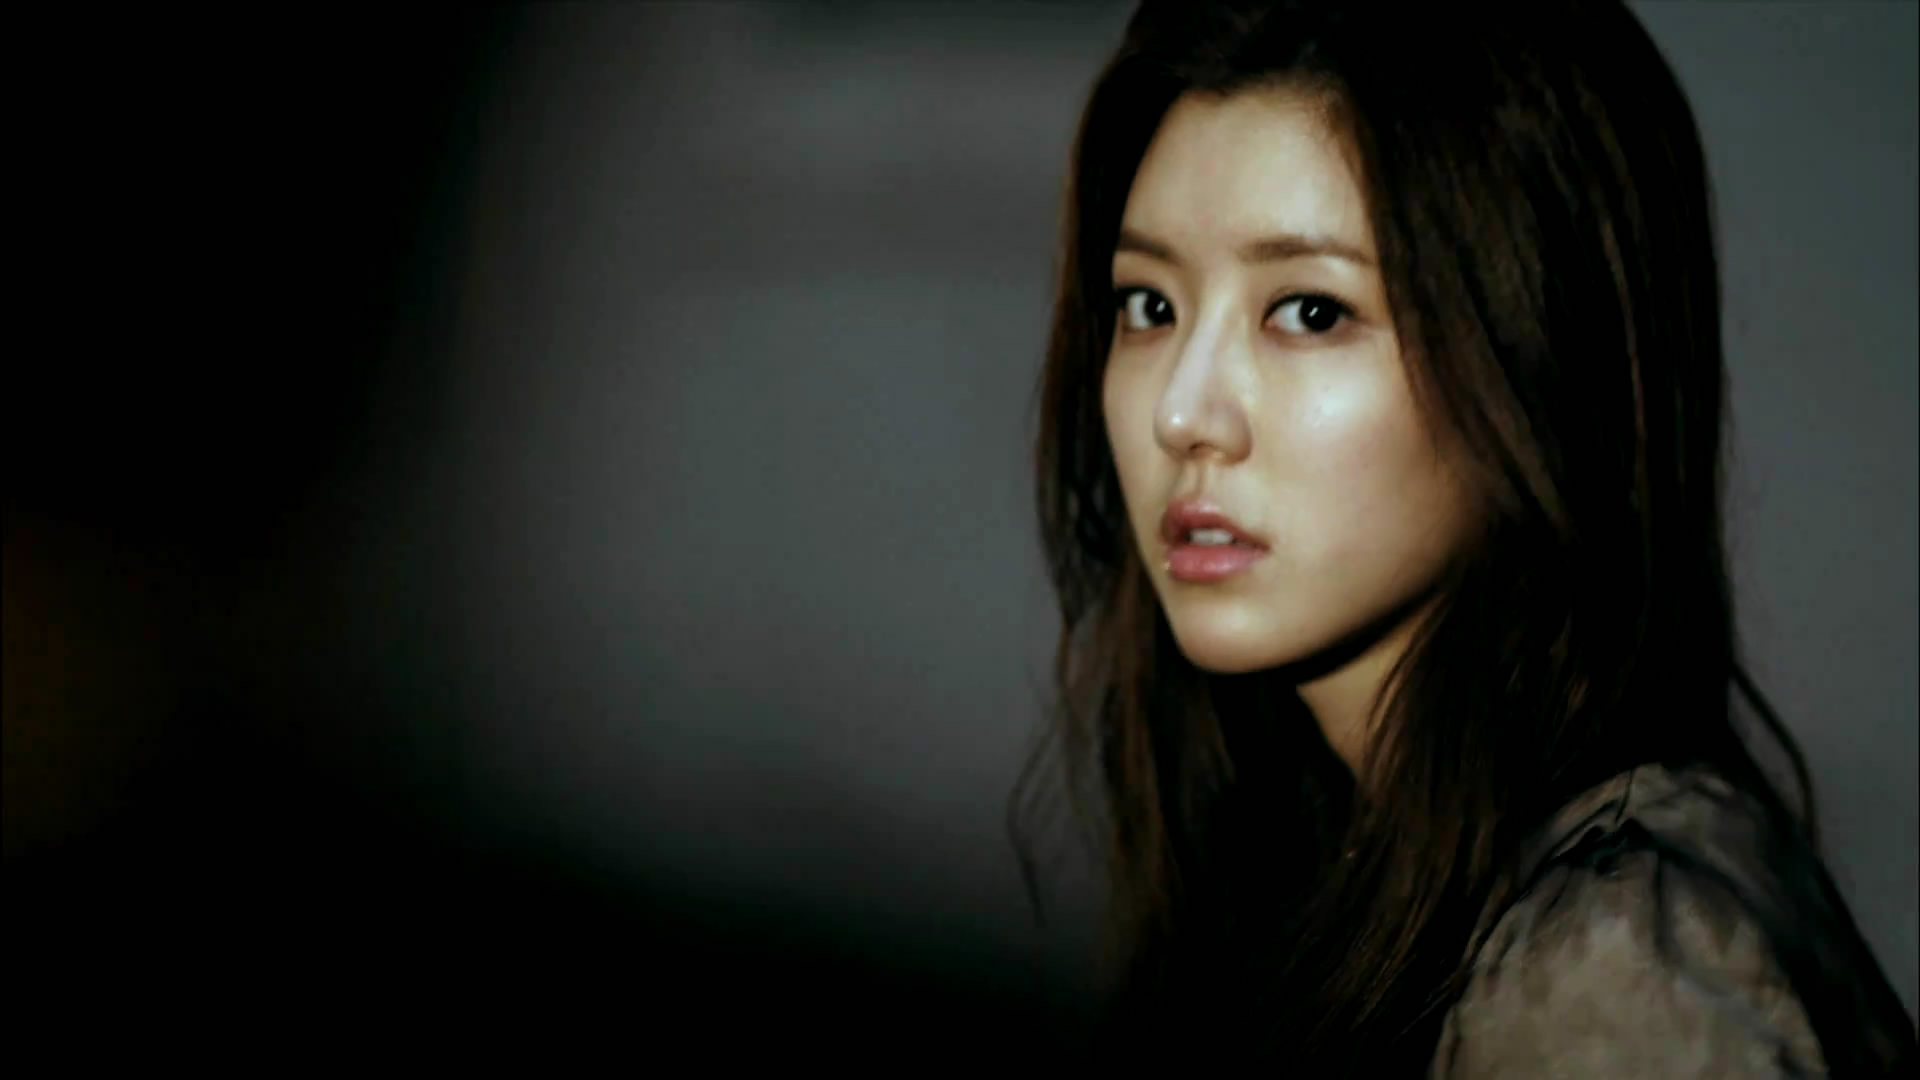 Park Han Byul Image: Park Han Byul Wallpapers High Resolution And Quality Download